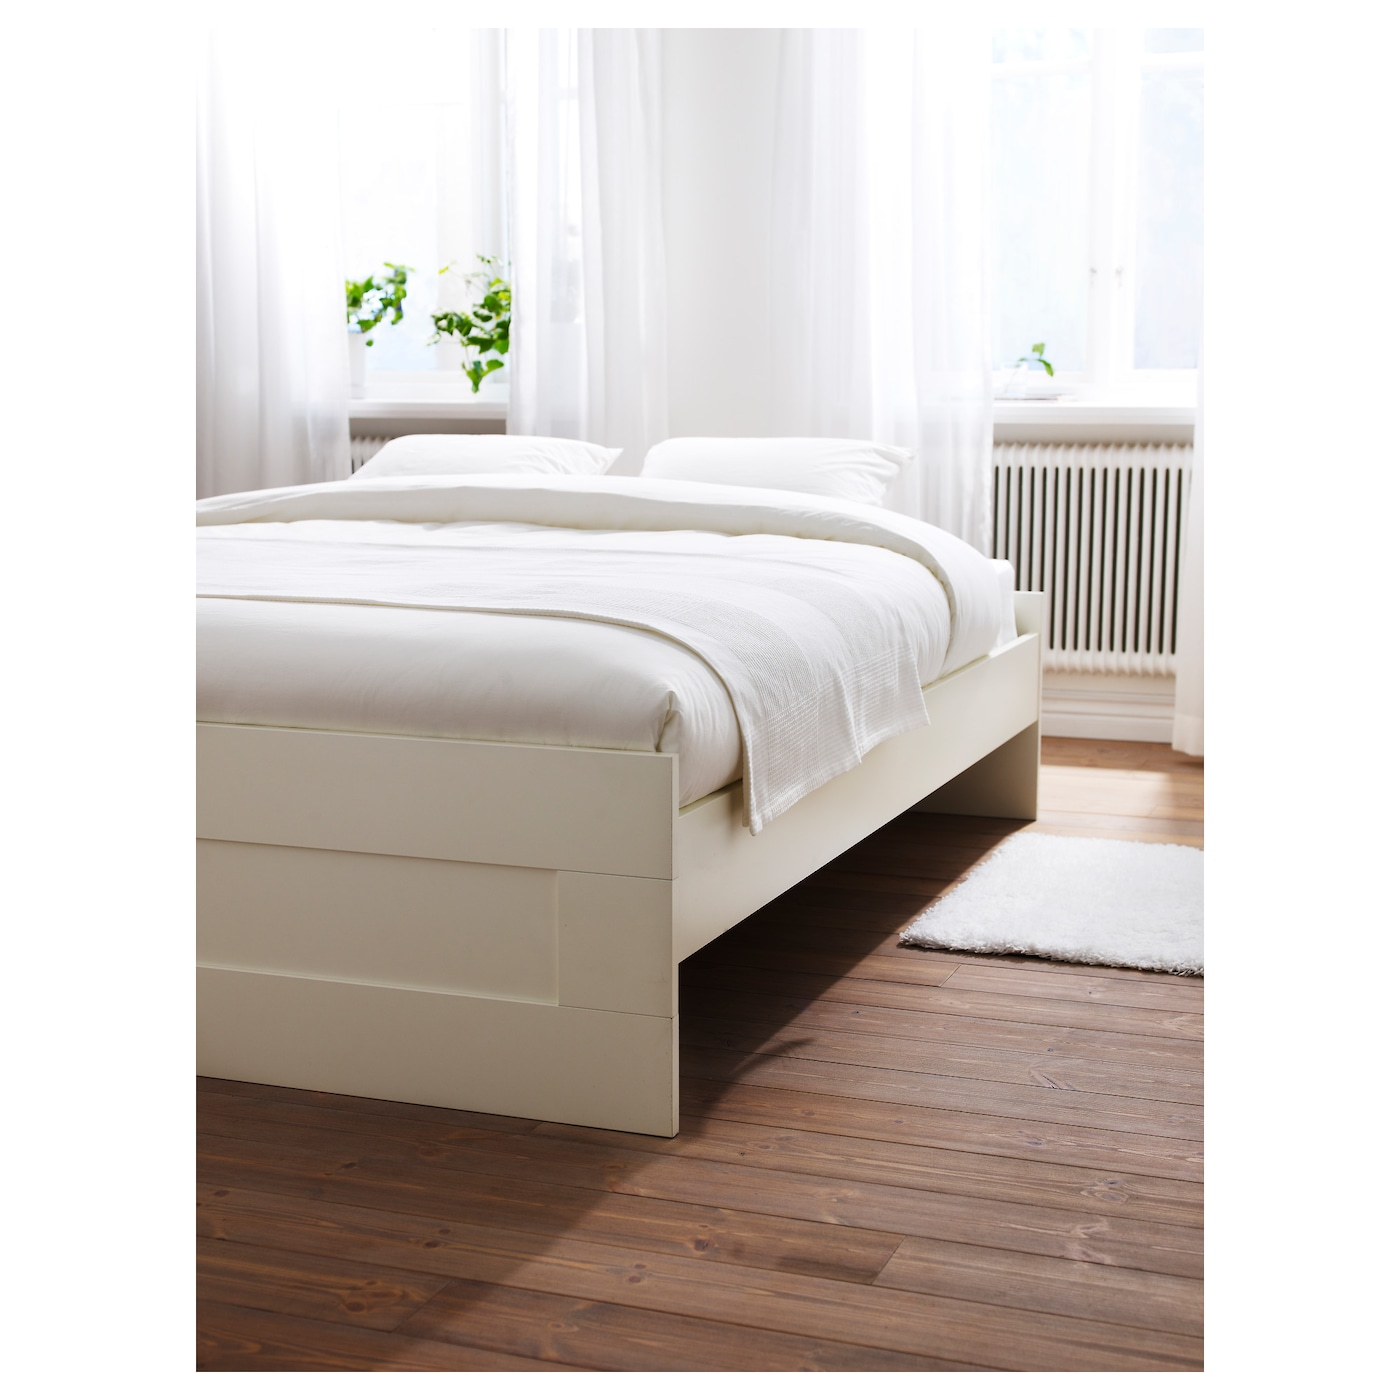 brimnes bed frame white l nset 180x200 cm ikea. Black Bedroom Furniture Sets. Home Design Ideas